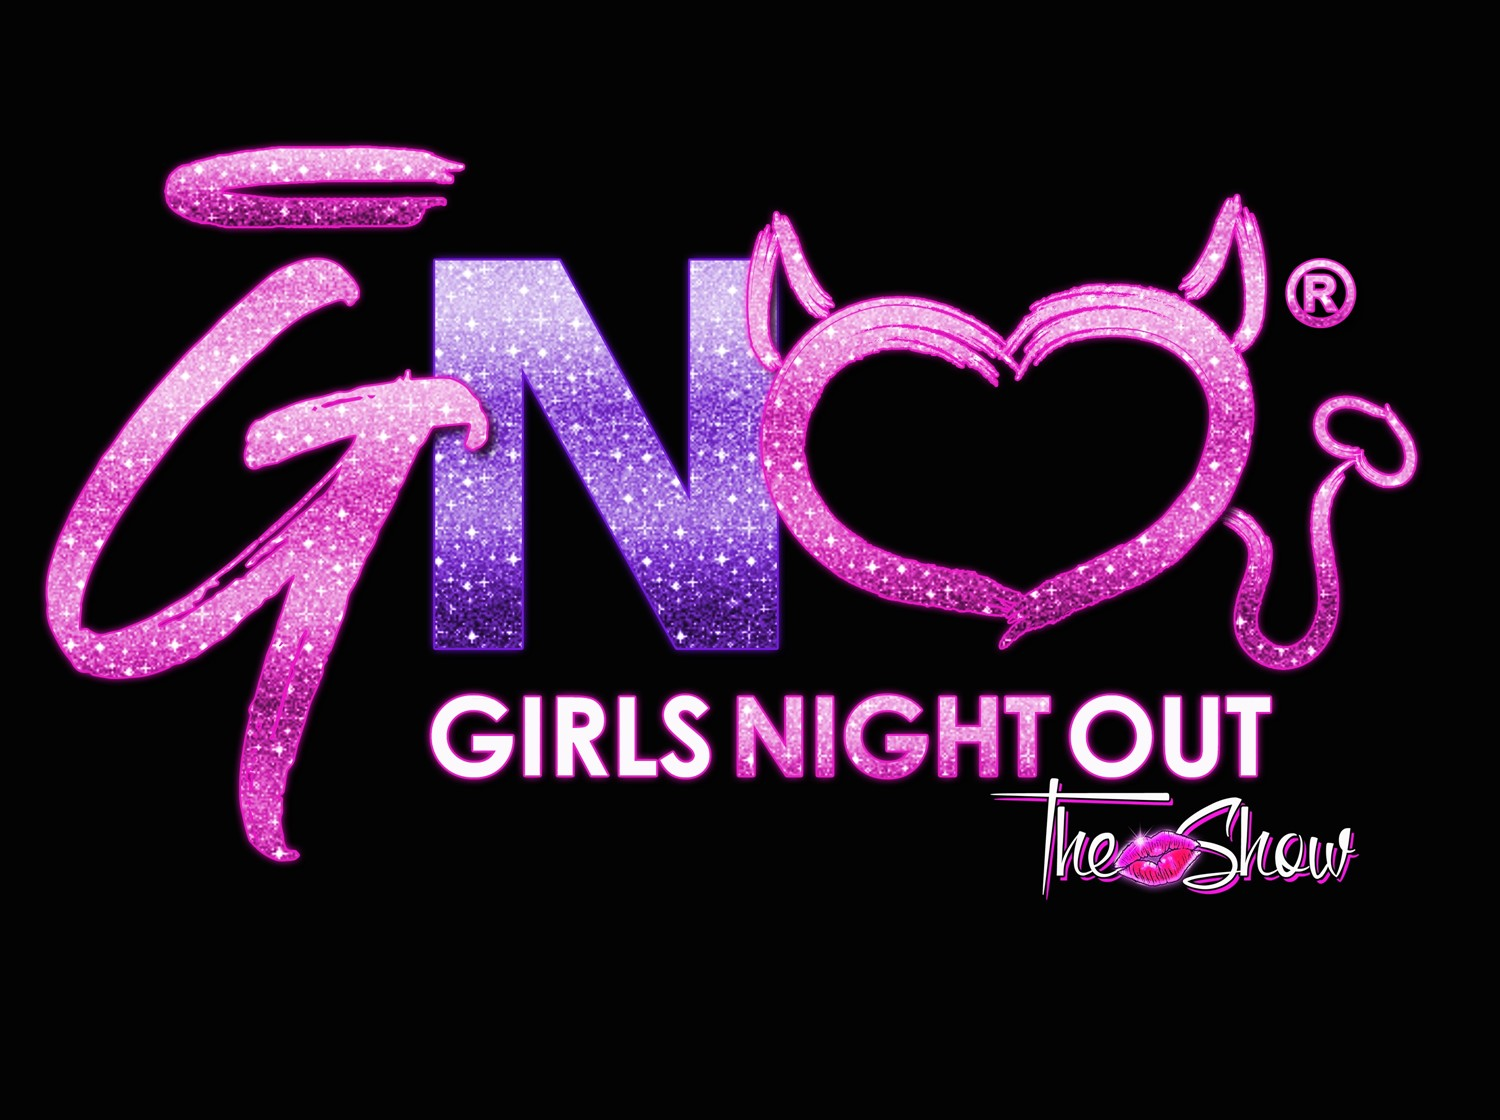 Tomo Hibachi & Sushi (21+) Cleveland, OH on may. 19, 20:00@Tomo Hibachi & Sushi - Buy tickets and Get information on Girls Night Out the Show tickets.girlsnightouttheshow.com